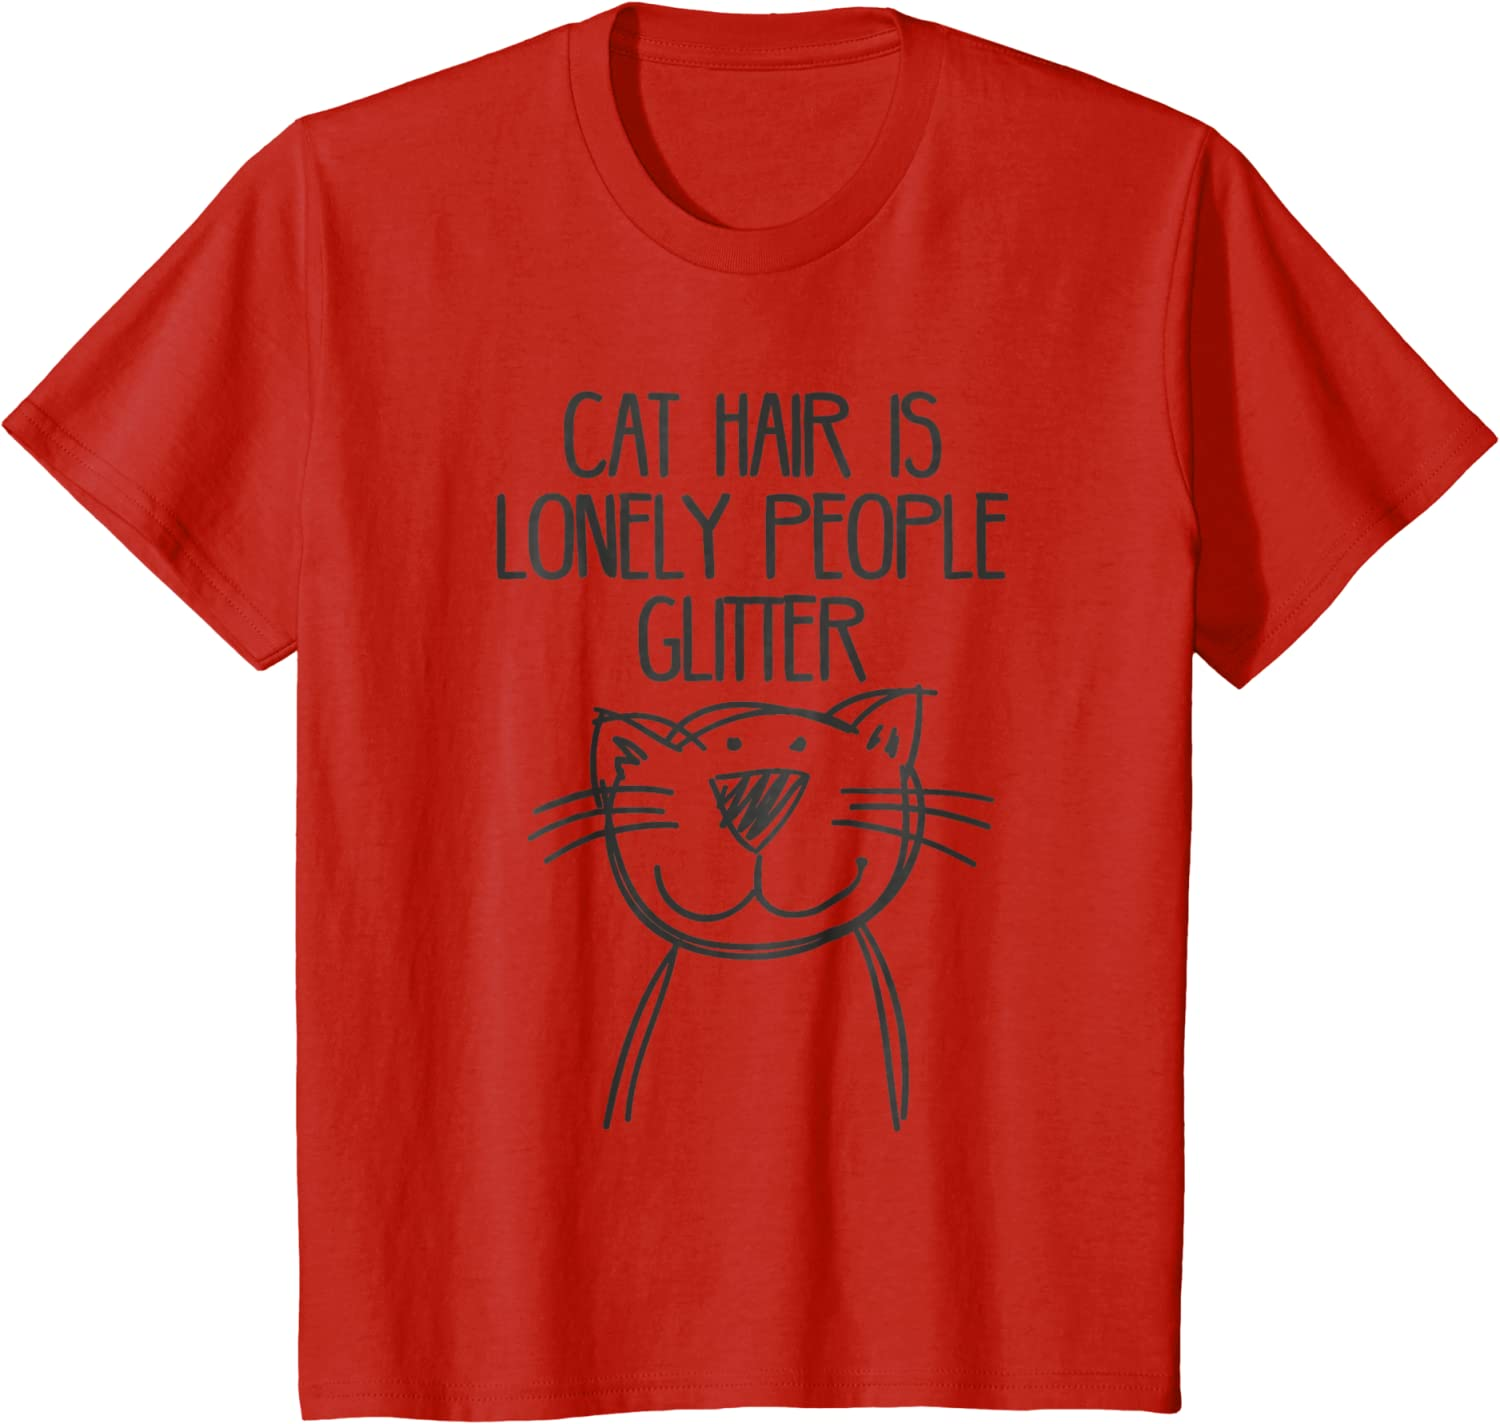 CAT HAIR IS LONELY PEOPLE GLITTER love cats lady//owner crazy T-shirt S-5XL